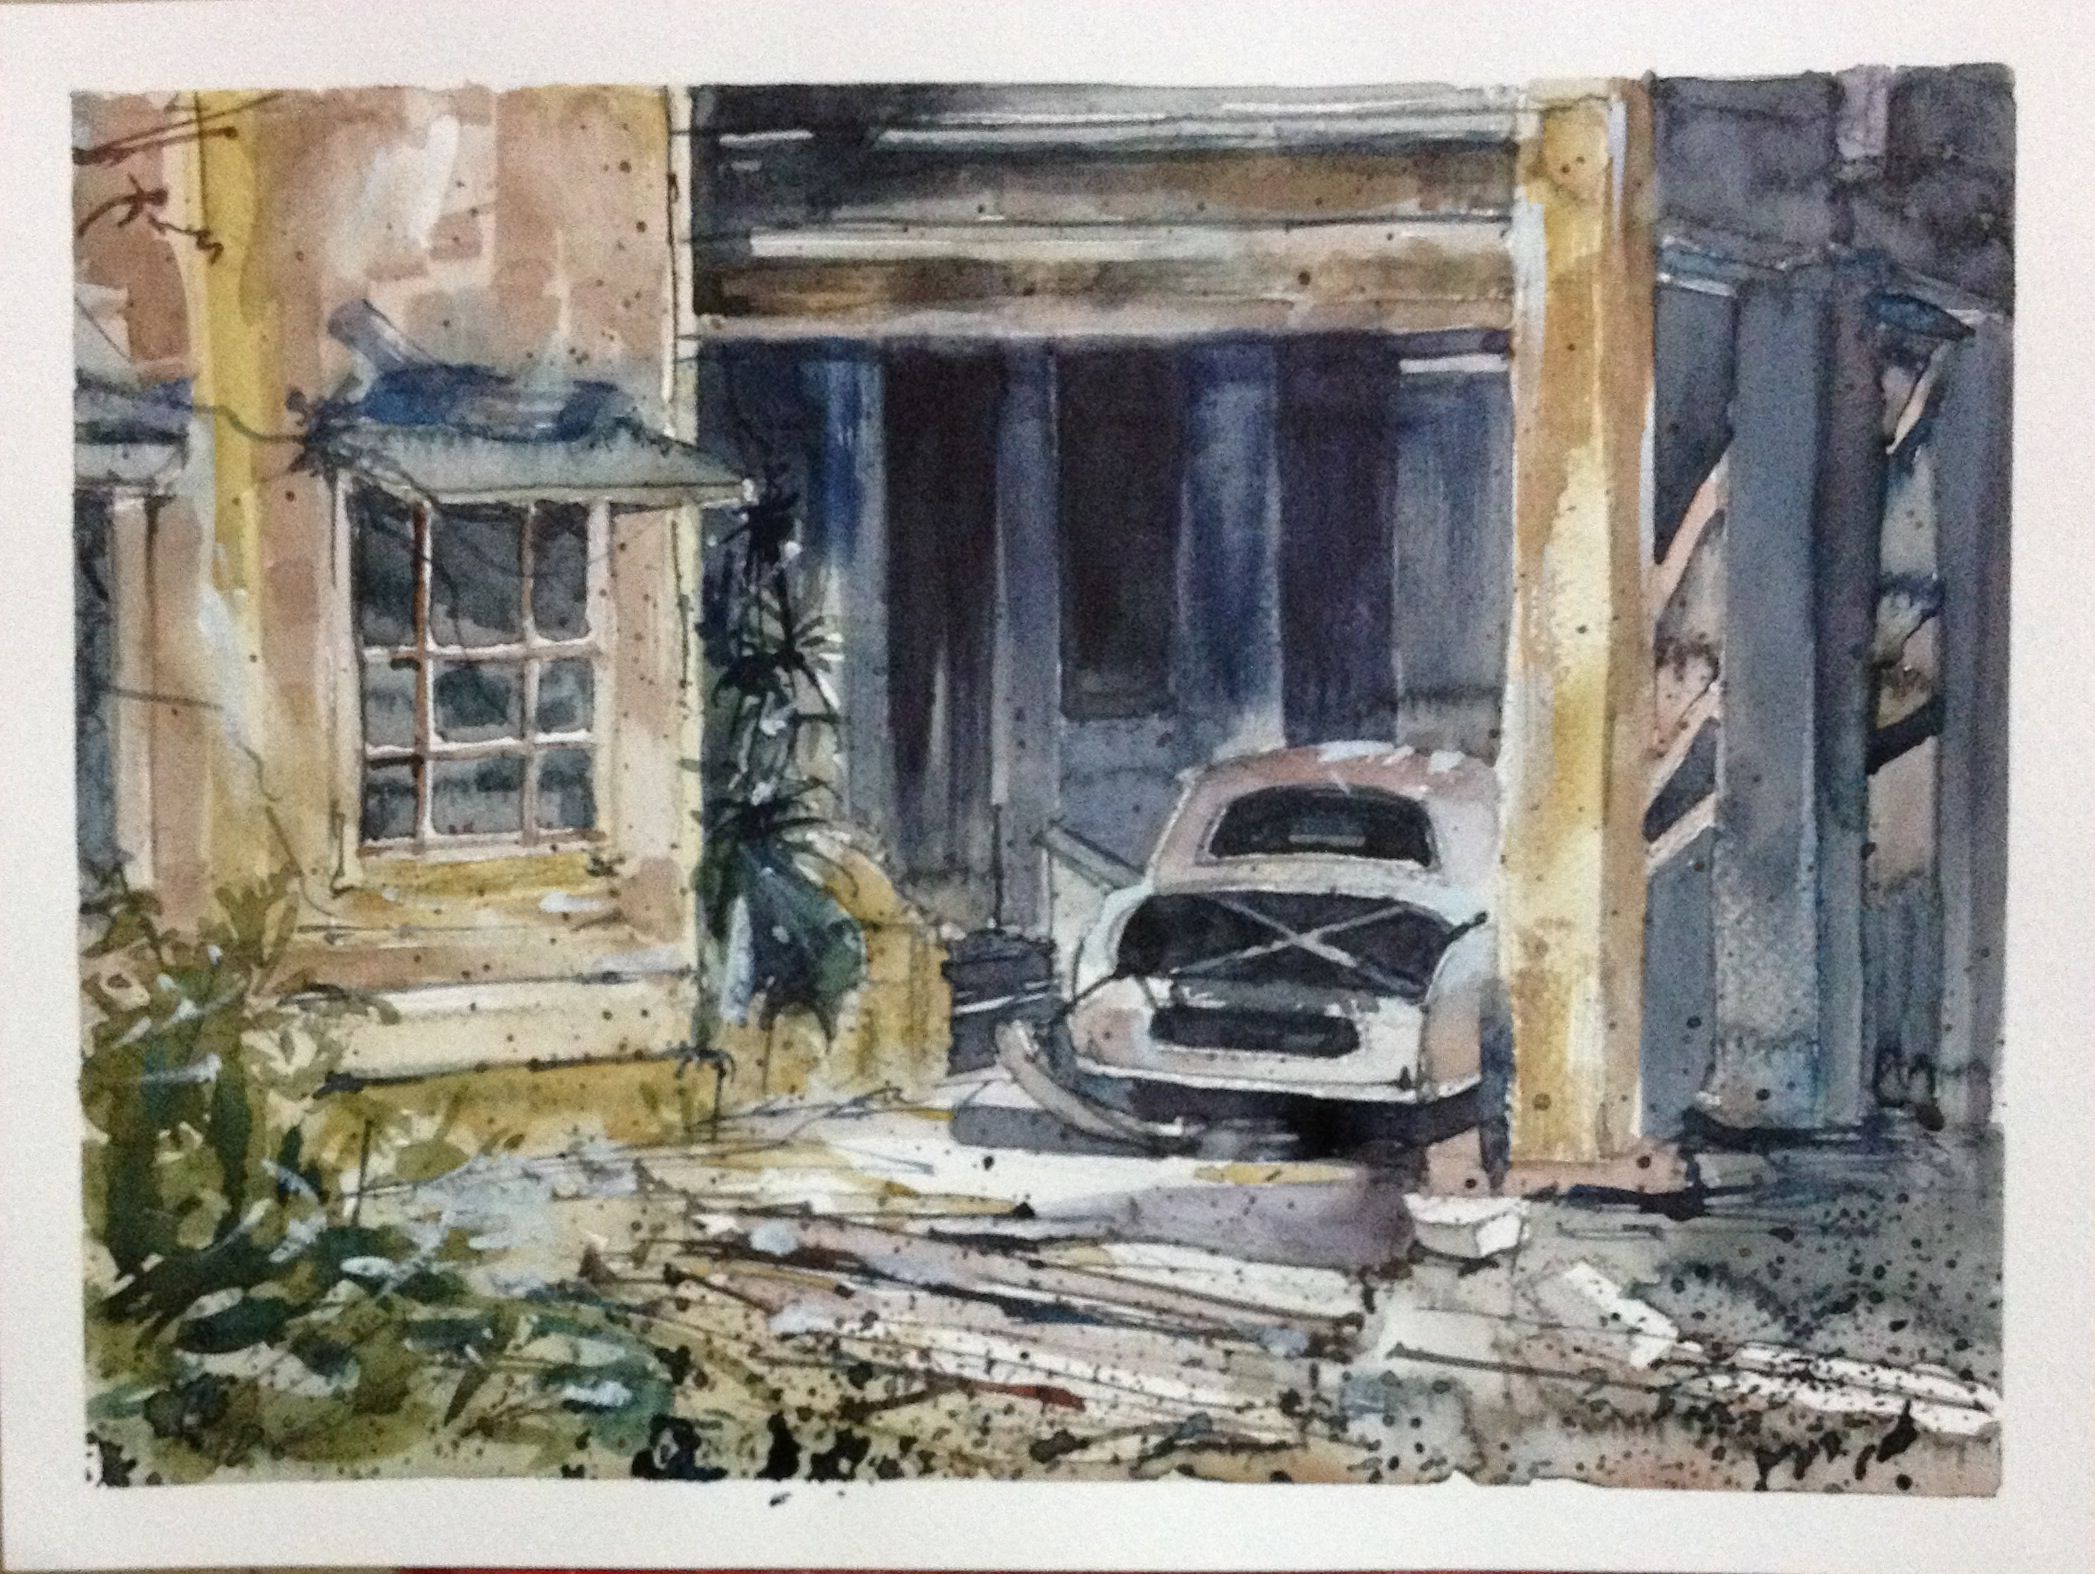 Abandoned House - watercolour by Sushanto